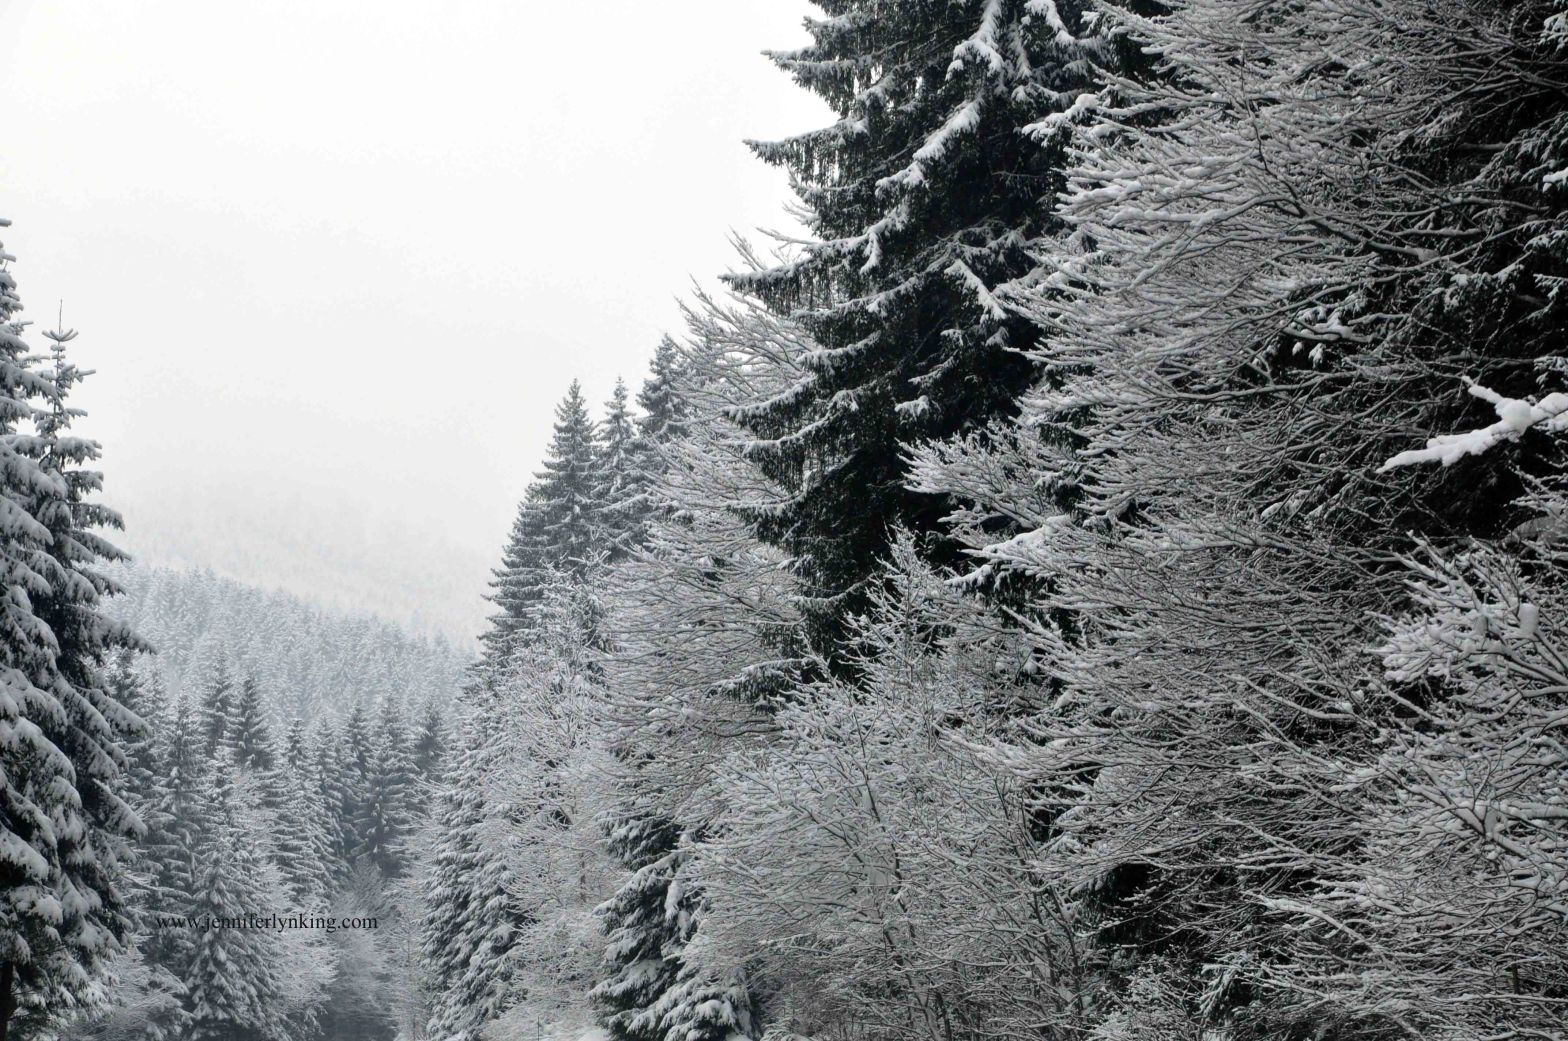 Austrian Alps at Christmas